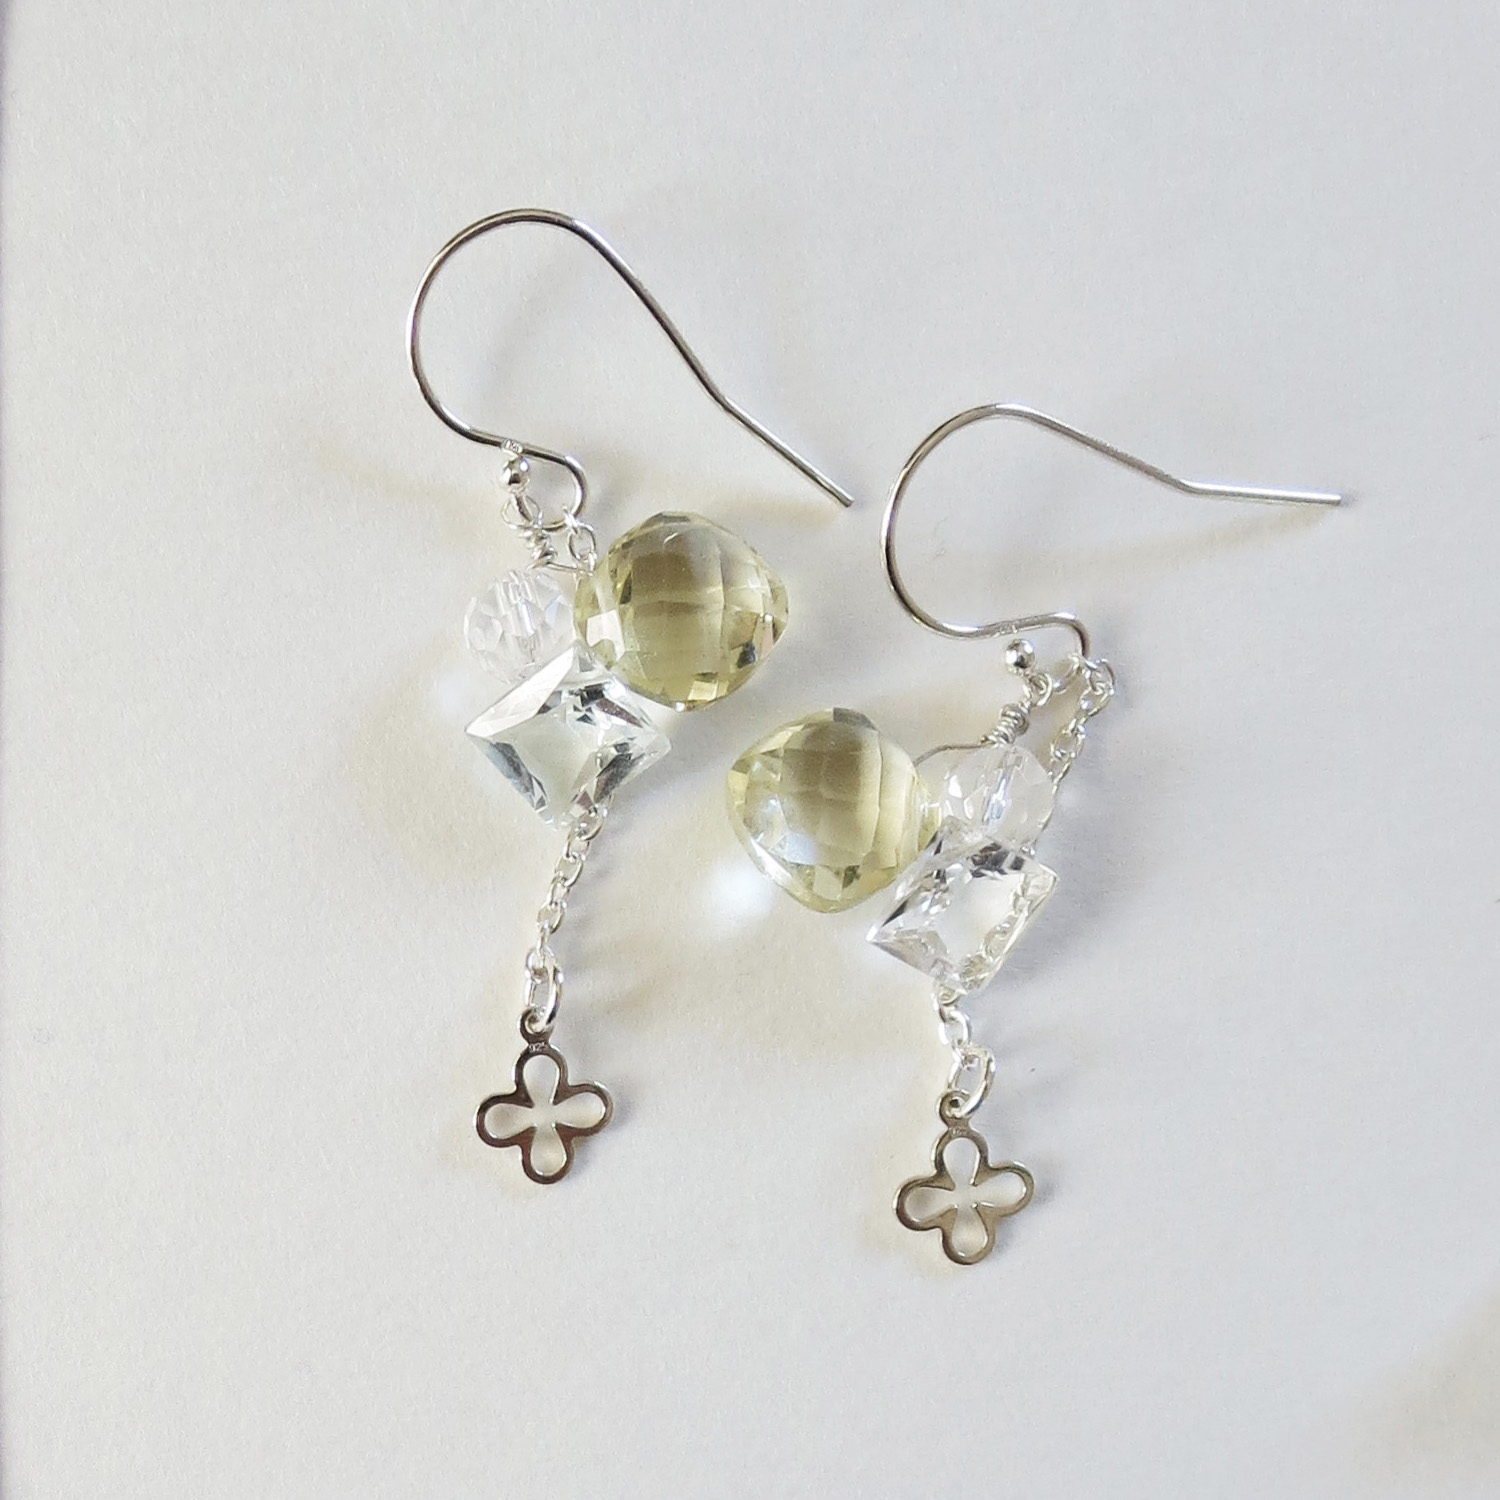 Honey quartz silver earrings